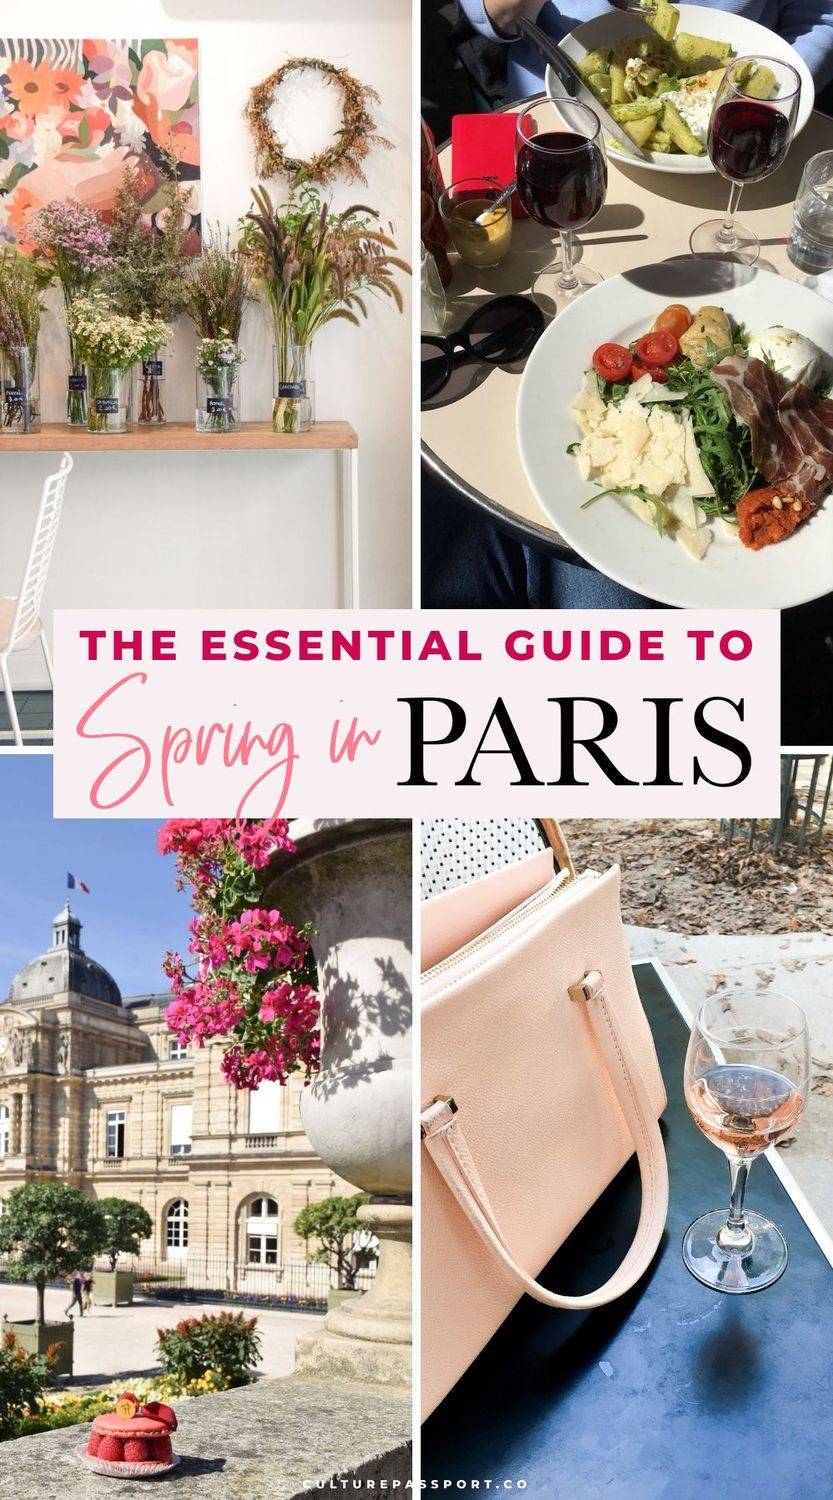 The Essential Guide to Spring in Paris! Everything you need to know before visiting Paris in spring. #parisguide #paristips #springtravel